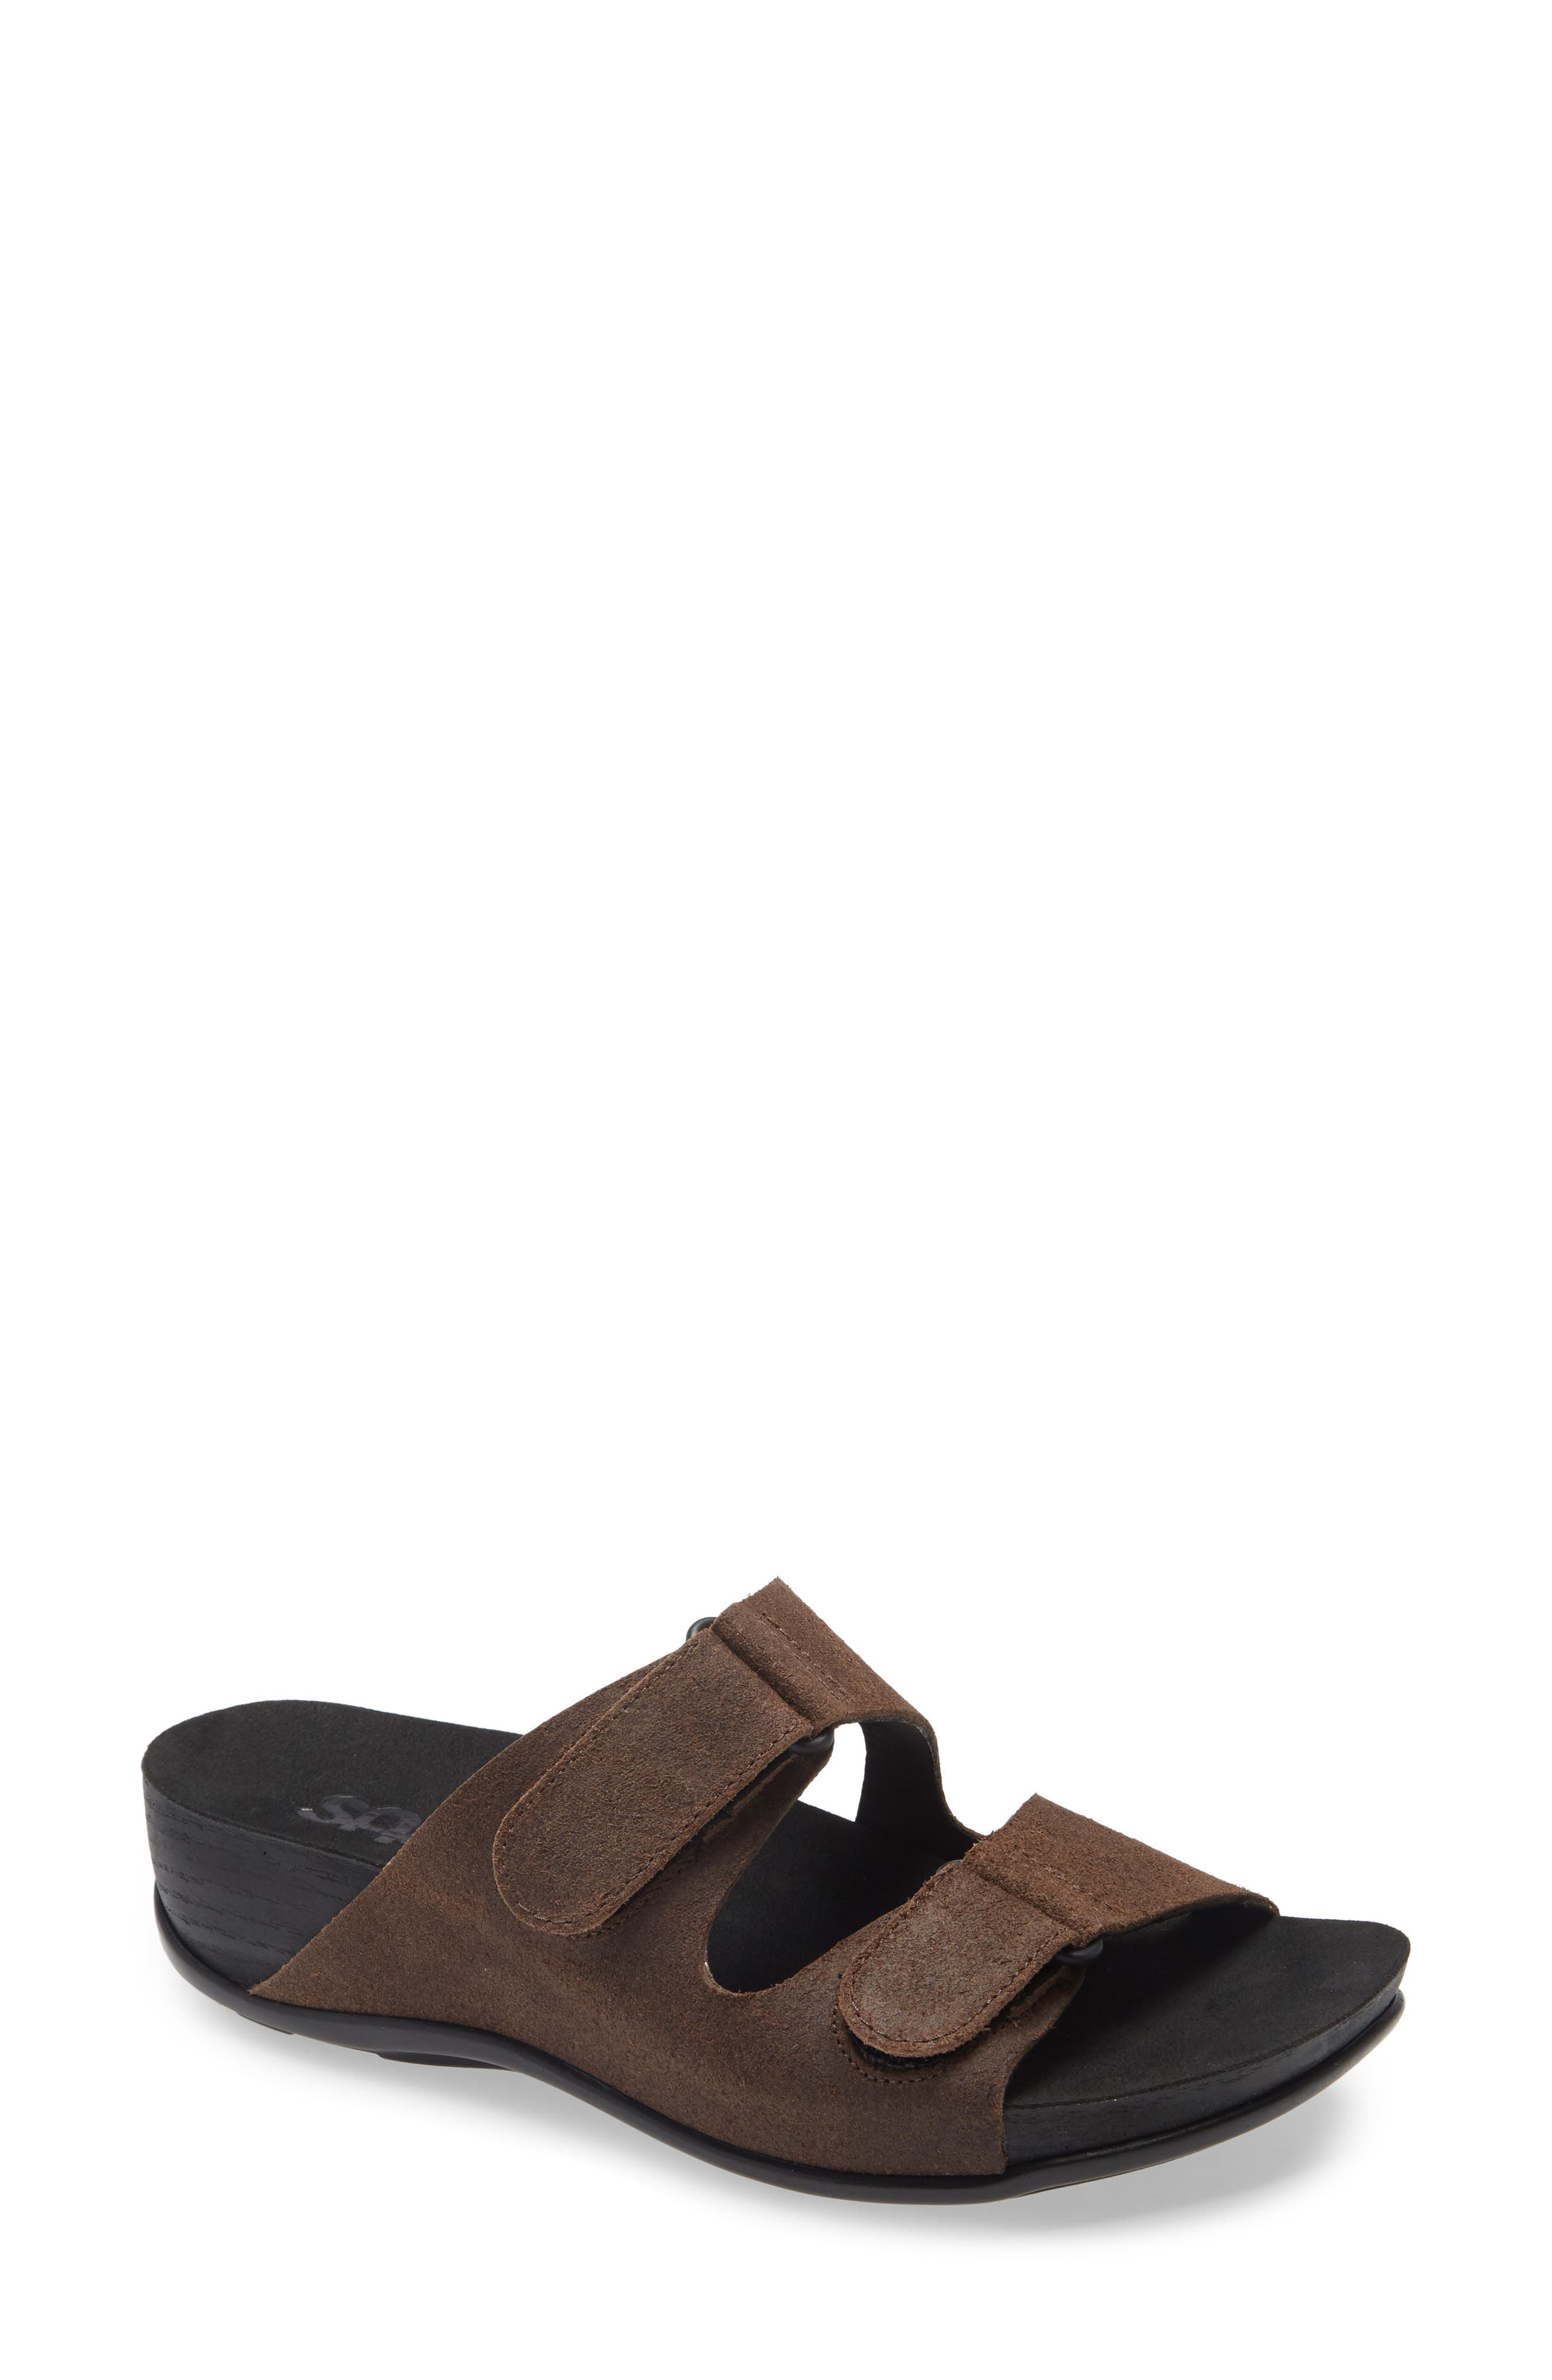 A contoured, cushioned footbed with arch support provides all-day comfort for a casual-chic slide topped with adjustable hook-and-loop straps for a custom fit. Style Name: Sas Seaside Slide Sandal (Women). Style Number: 6163180. Available in stores.